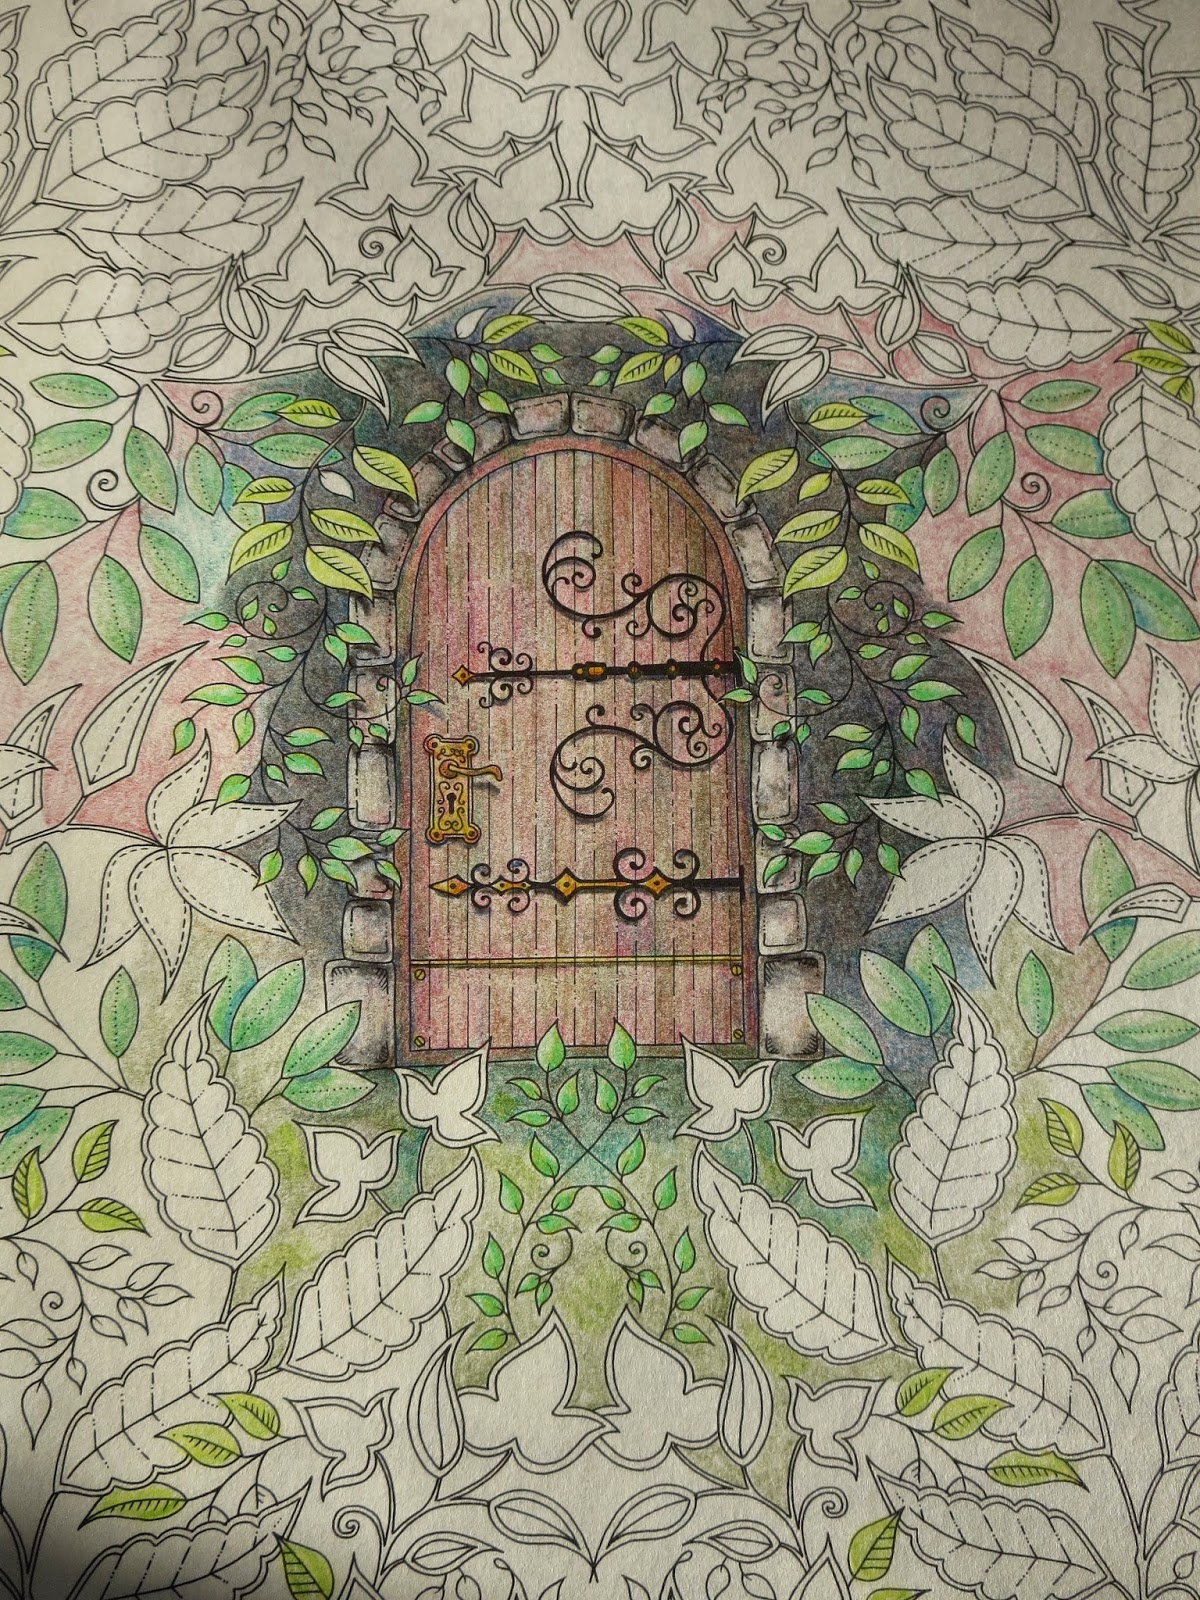 then i started adding colour to the background i layered browns blues greys greens and a little red in the background it took me many hours and im - My Secret Garden Coloring Book